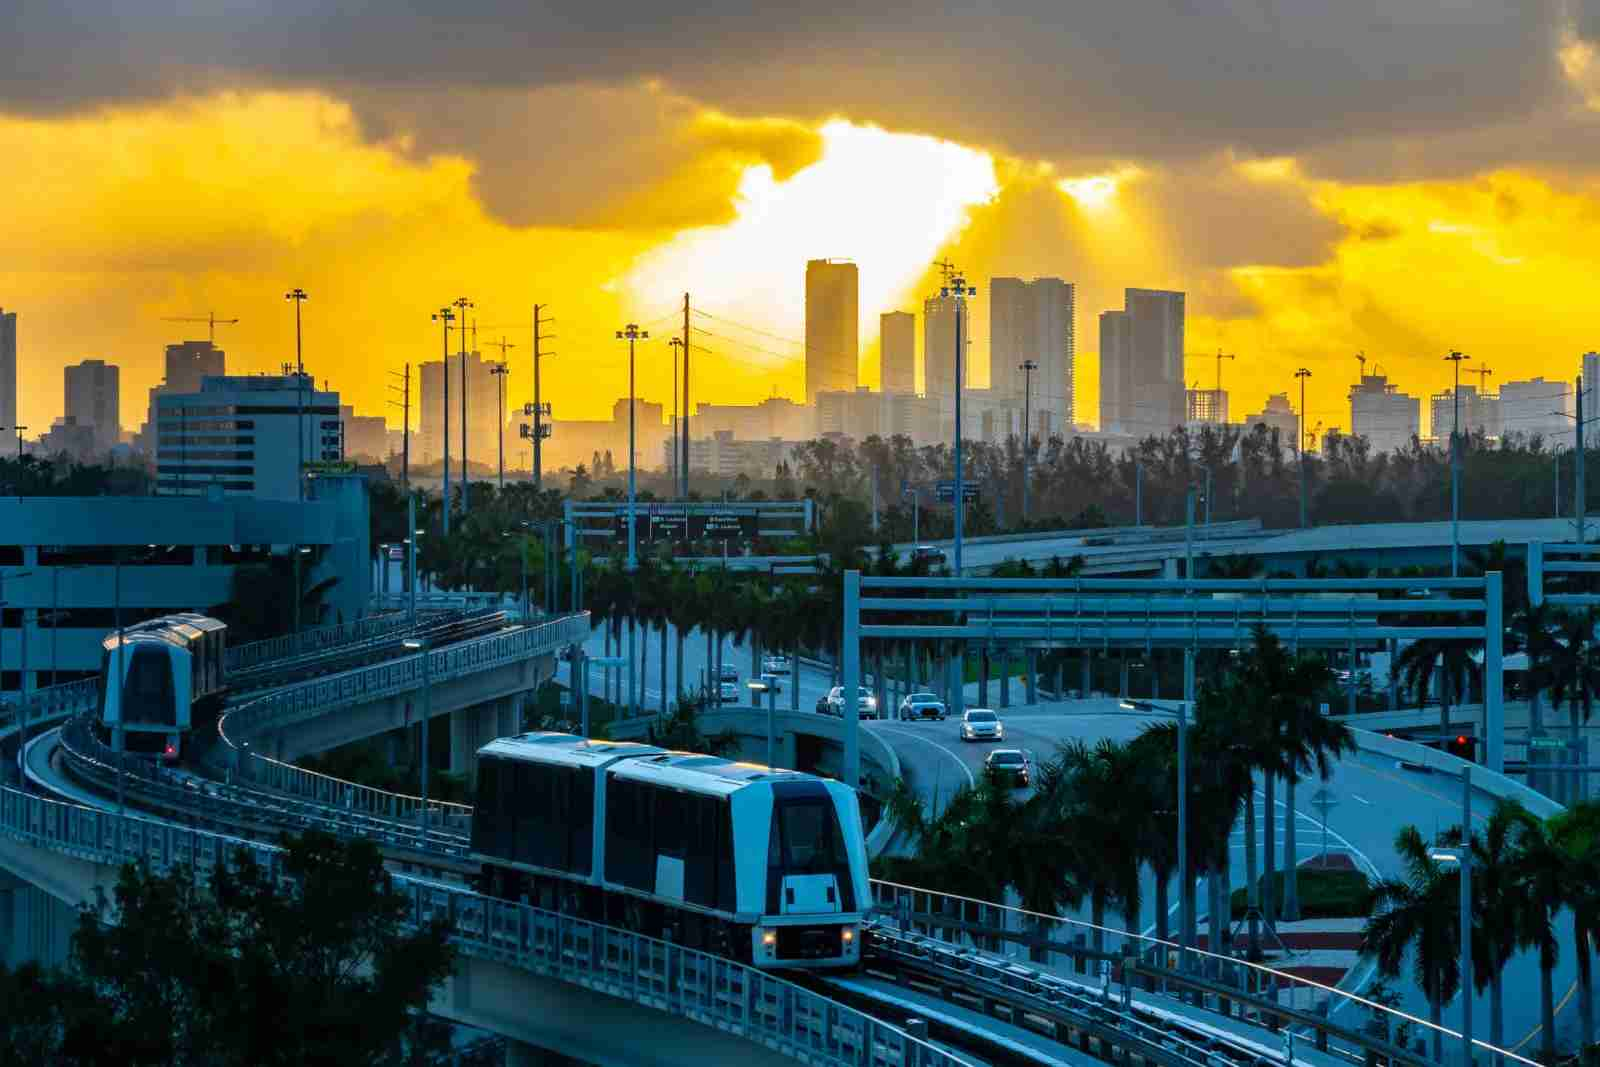 MIA Mover, an automated people mover system that transports passengers at Miami International Airport. (Photo by Debbie Ann Powerll/Getty Images)